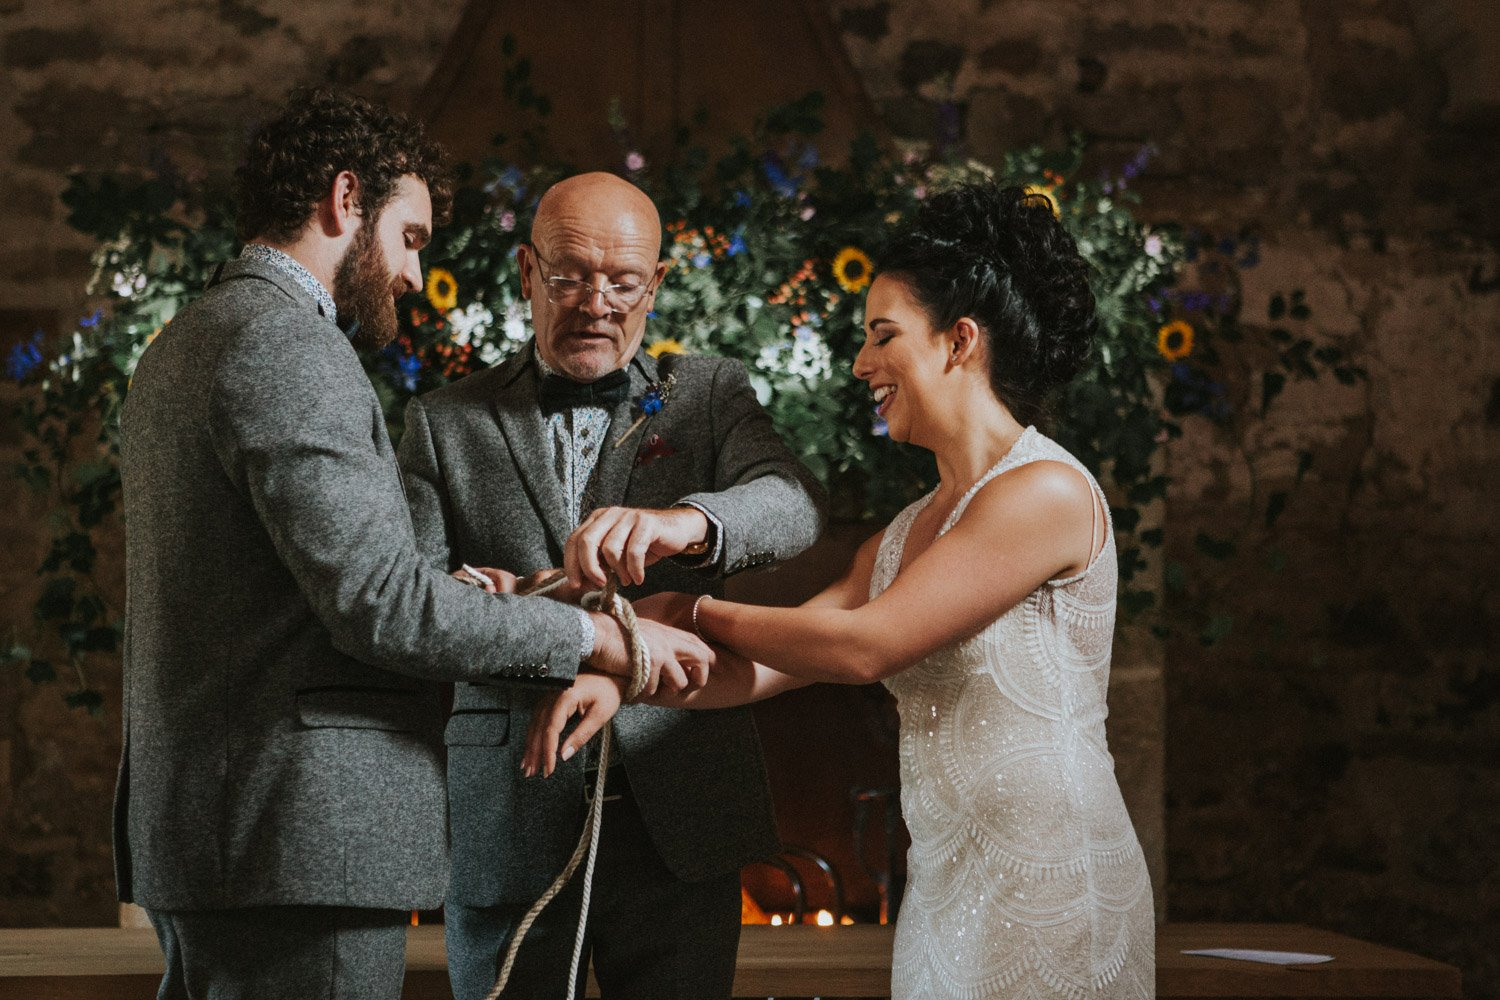 Northumberland Wedding Photographer - Handfasting ceremony at Healey Barn